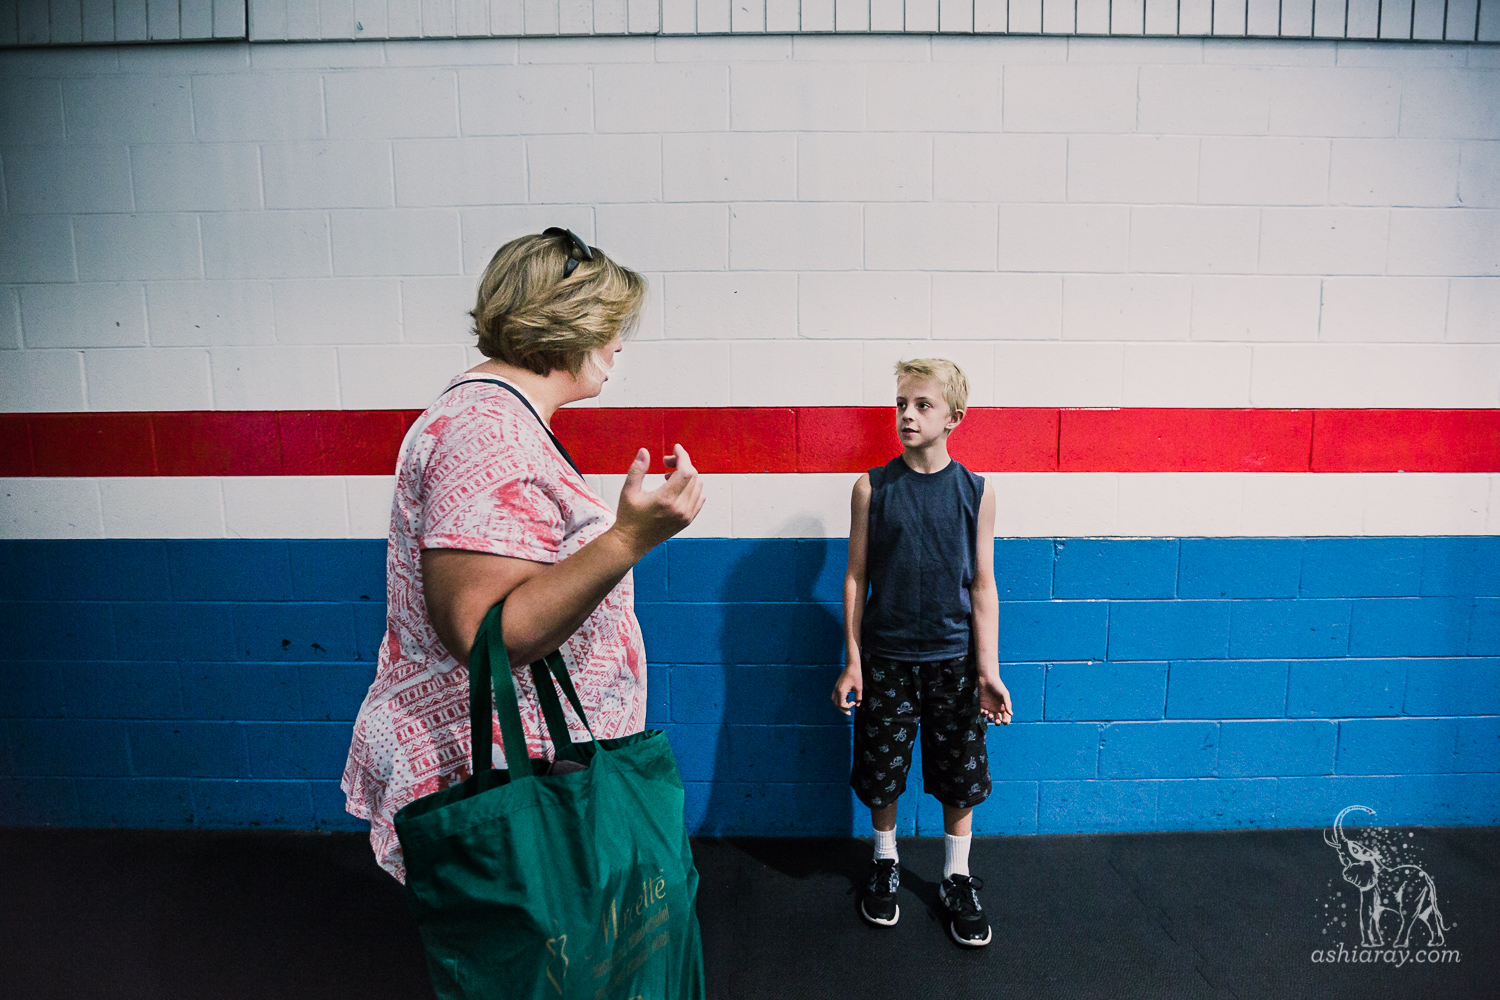 Boy and mother talking in front of wall with blue, red, and white stripes